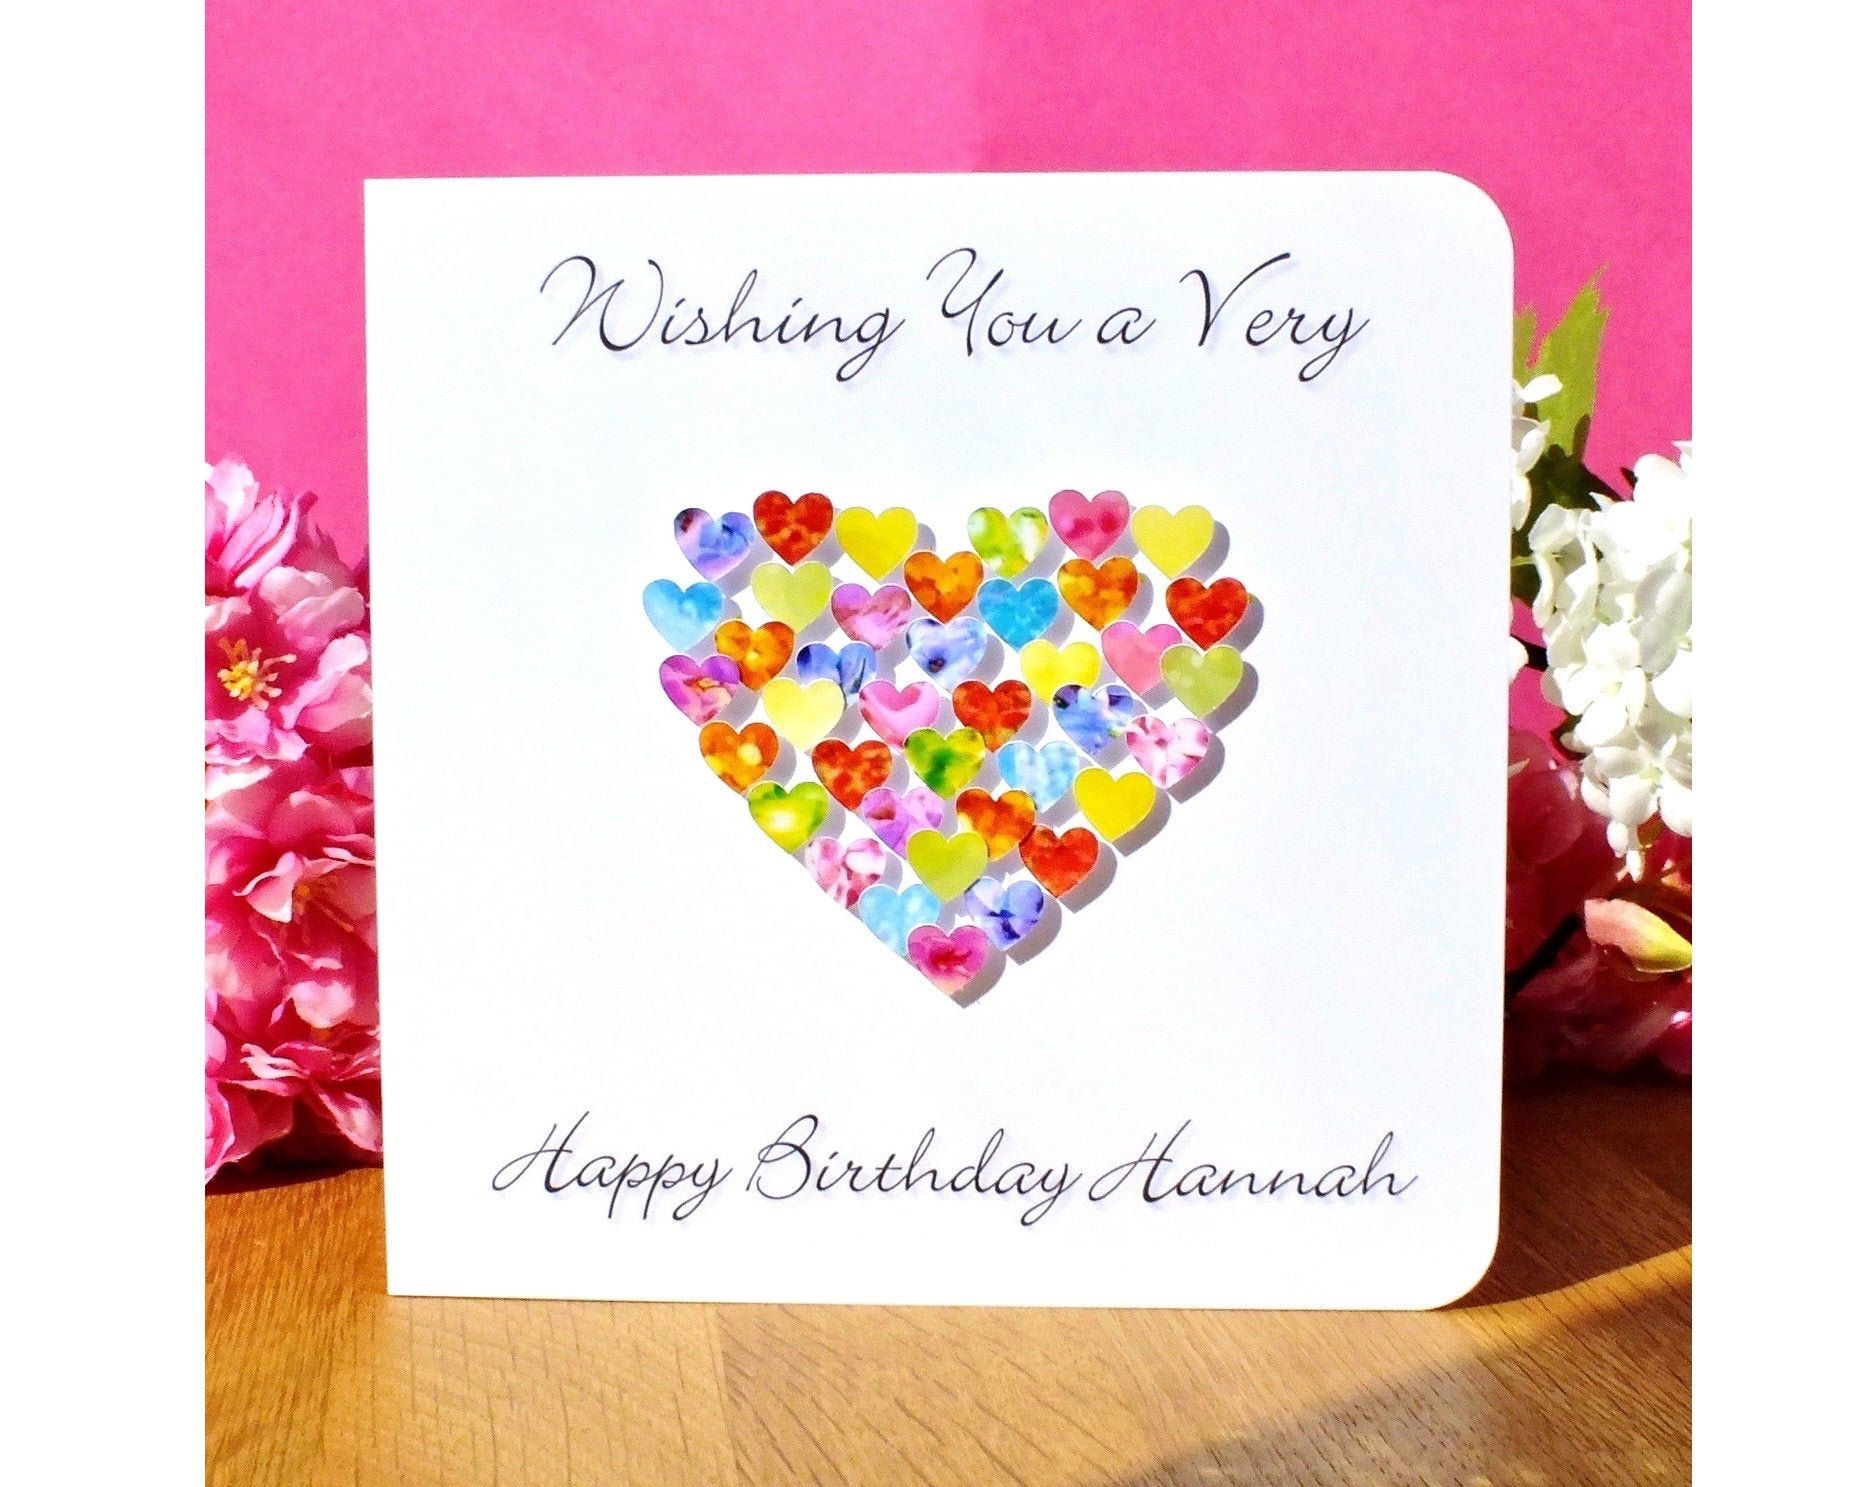 Personalised Birthday Card - Colourful Custom Birthday Card with Name or Relation of your choice, Sister, Friend, Daughter, Mum, etc.